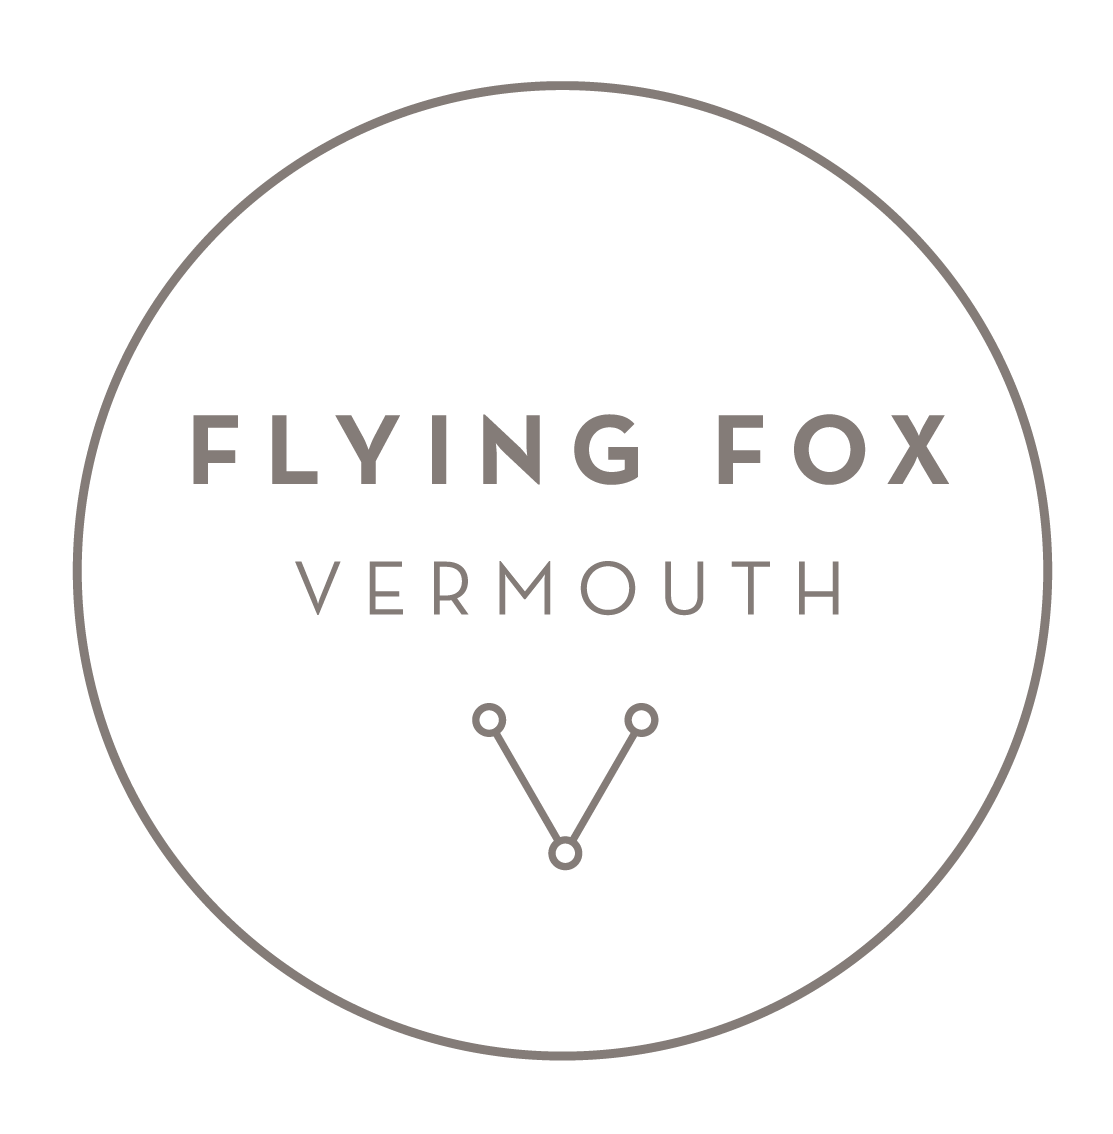 FLYING FOX VERMOUTH